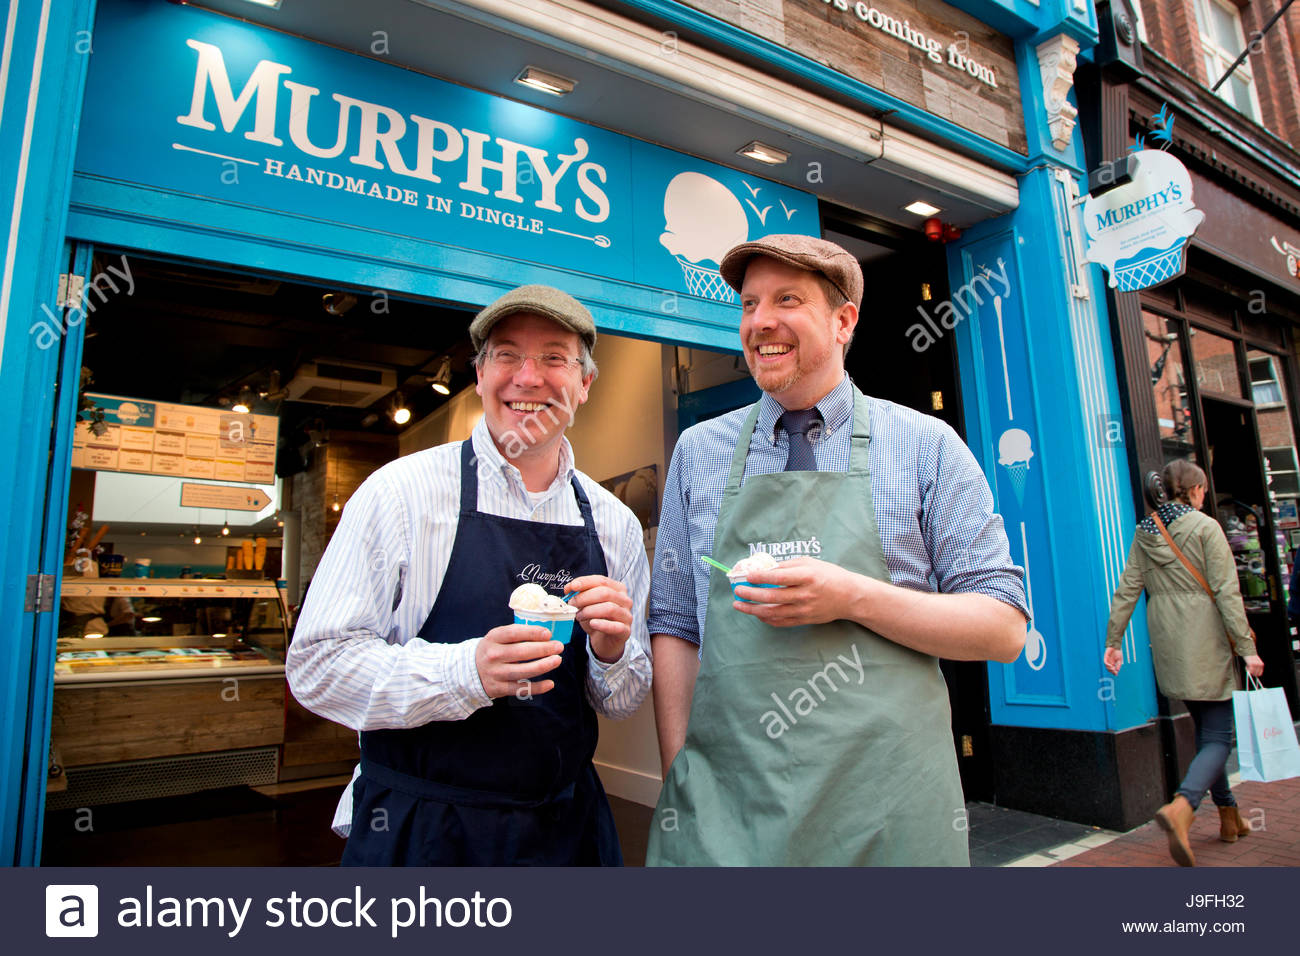 Brothers Kieran and Sean Murphy serve what is widely considered the best ice cream in Ireland. - Stock Image